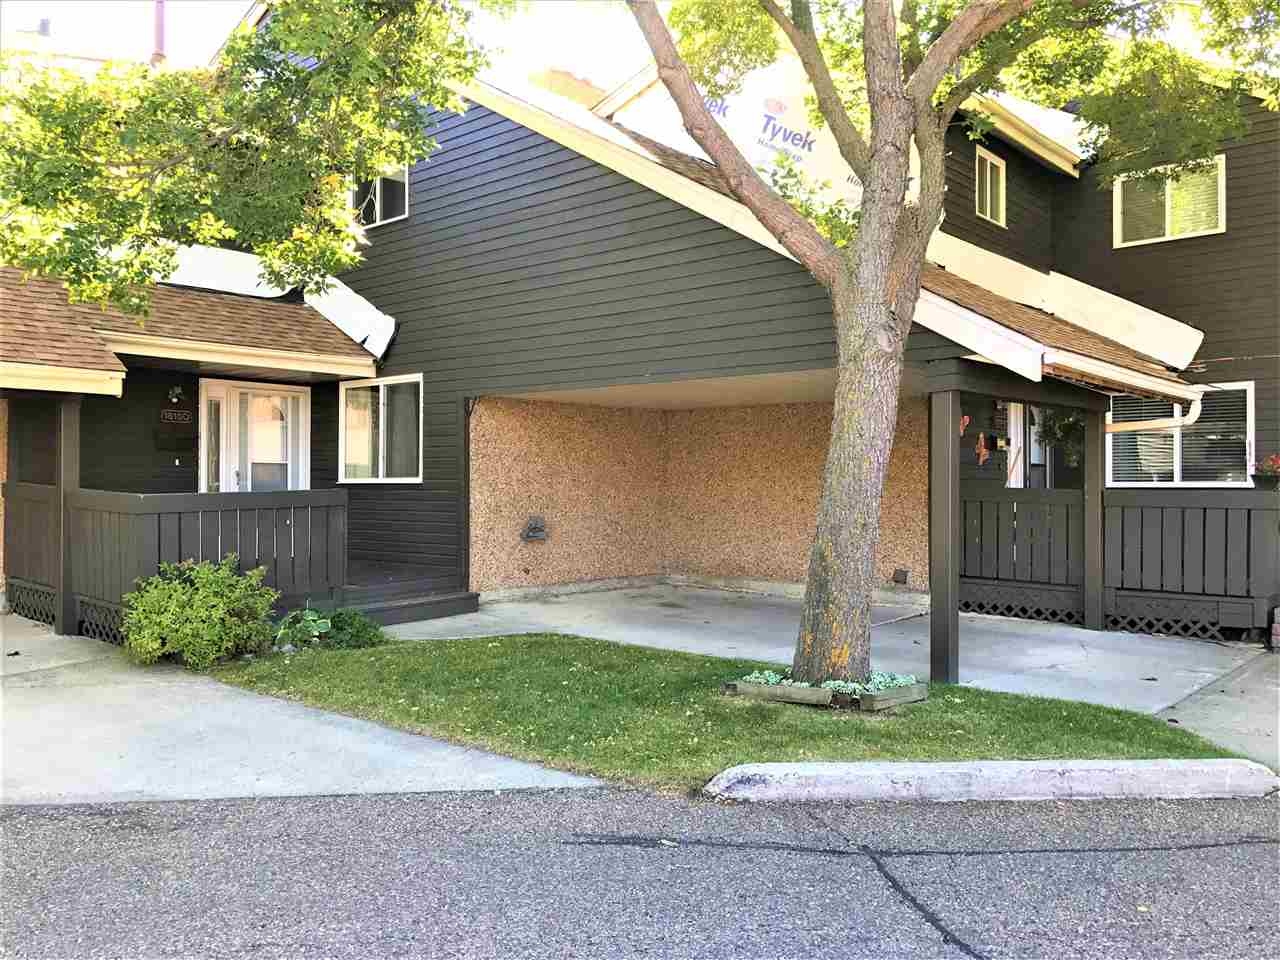 Main Photo: 18150 96 Avenue in Edmonton: Zone 20 Townhouse for sale : MLS® # E4081758